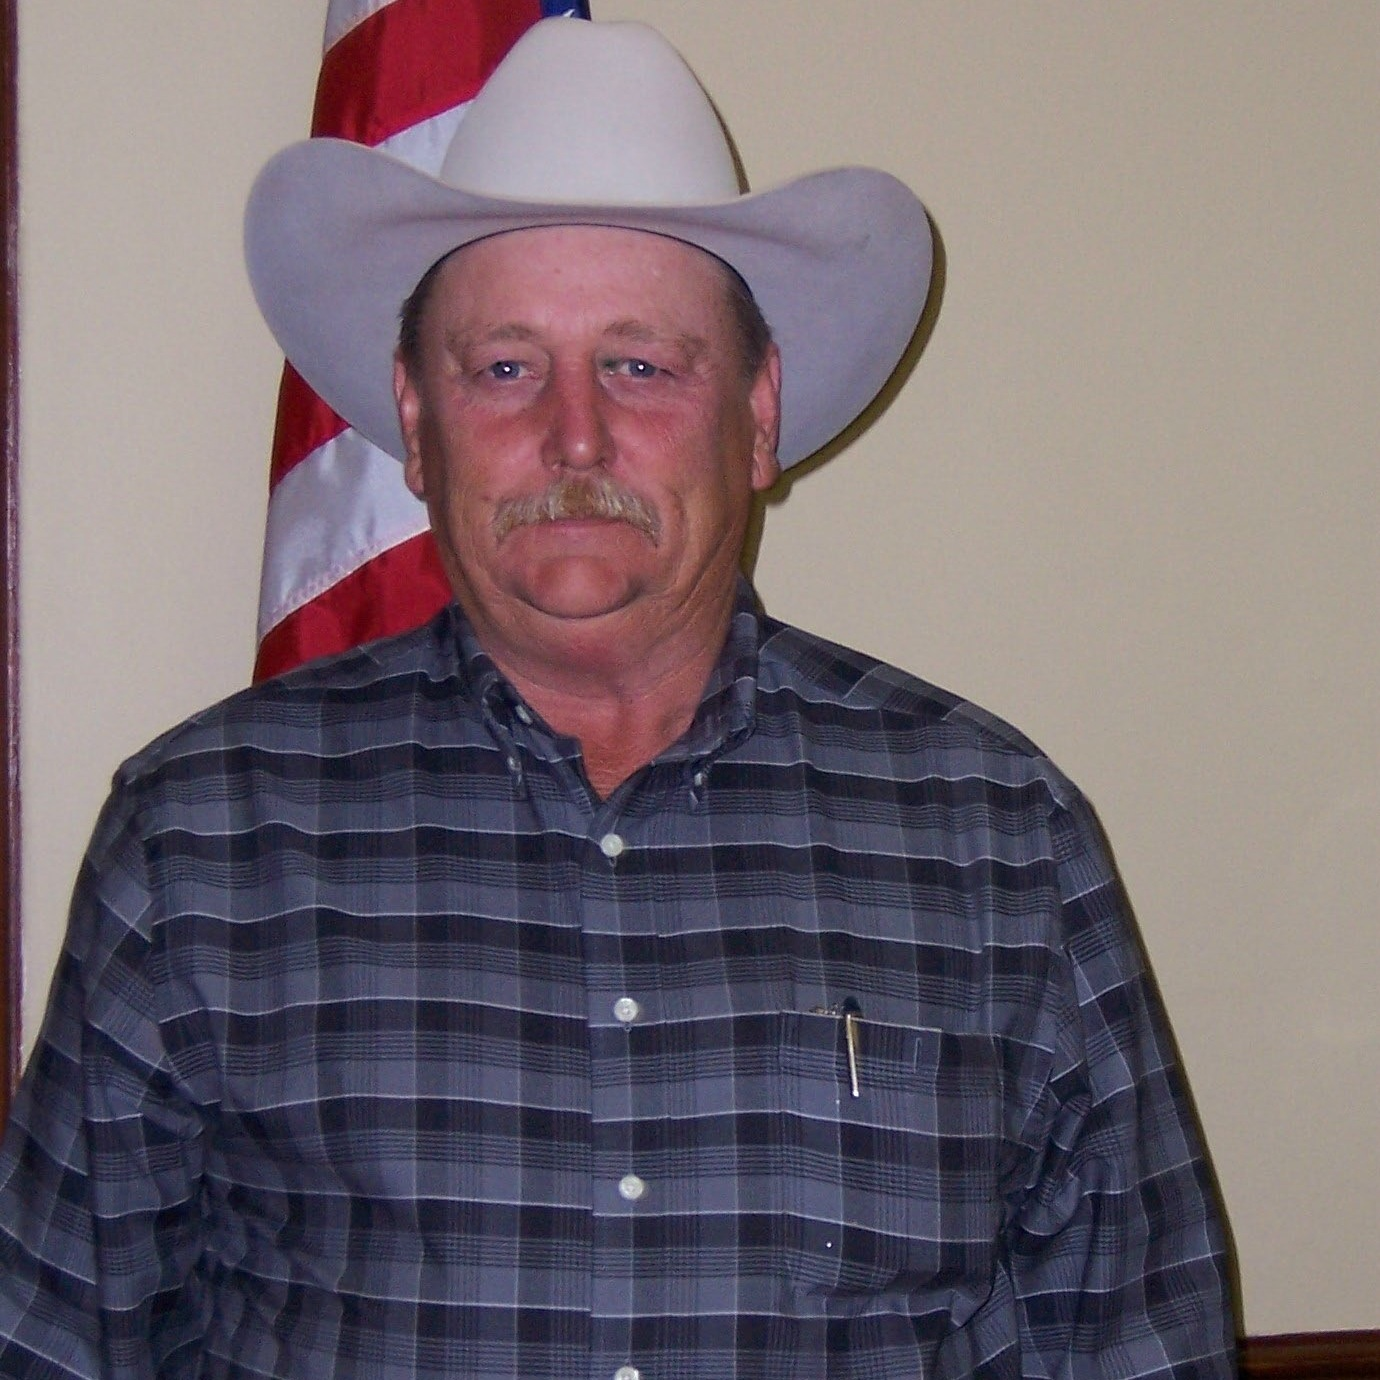 Pct. 1 Commissioner, Dell Whiddon - 427 St. George Street, Ste. #300Gonzales, Texas 78629Phone: 830-672-3700, 830-519-4104